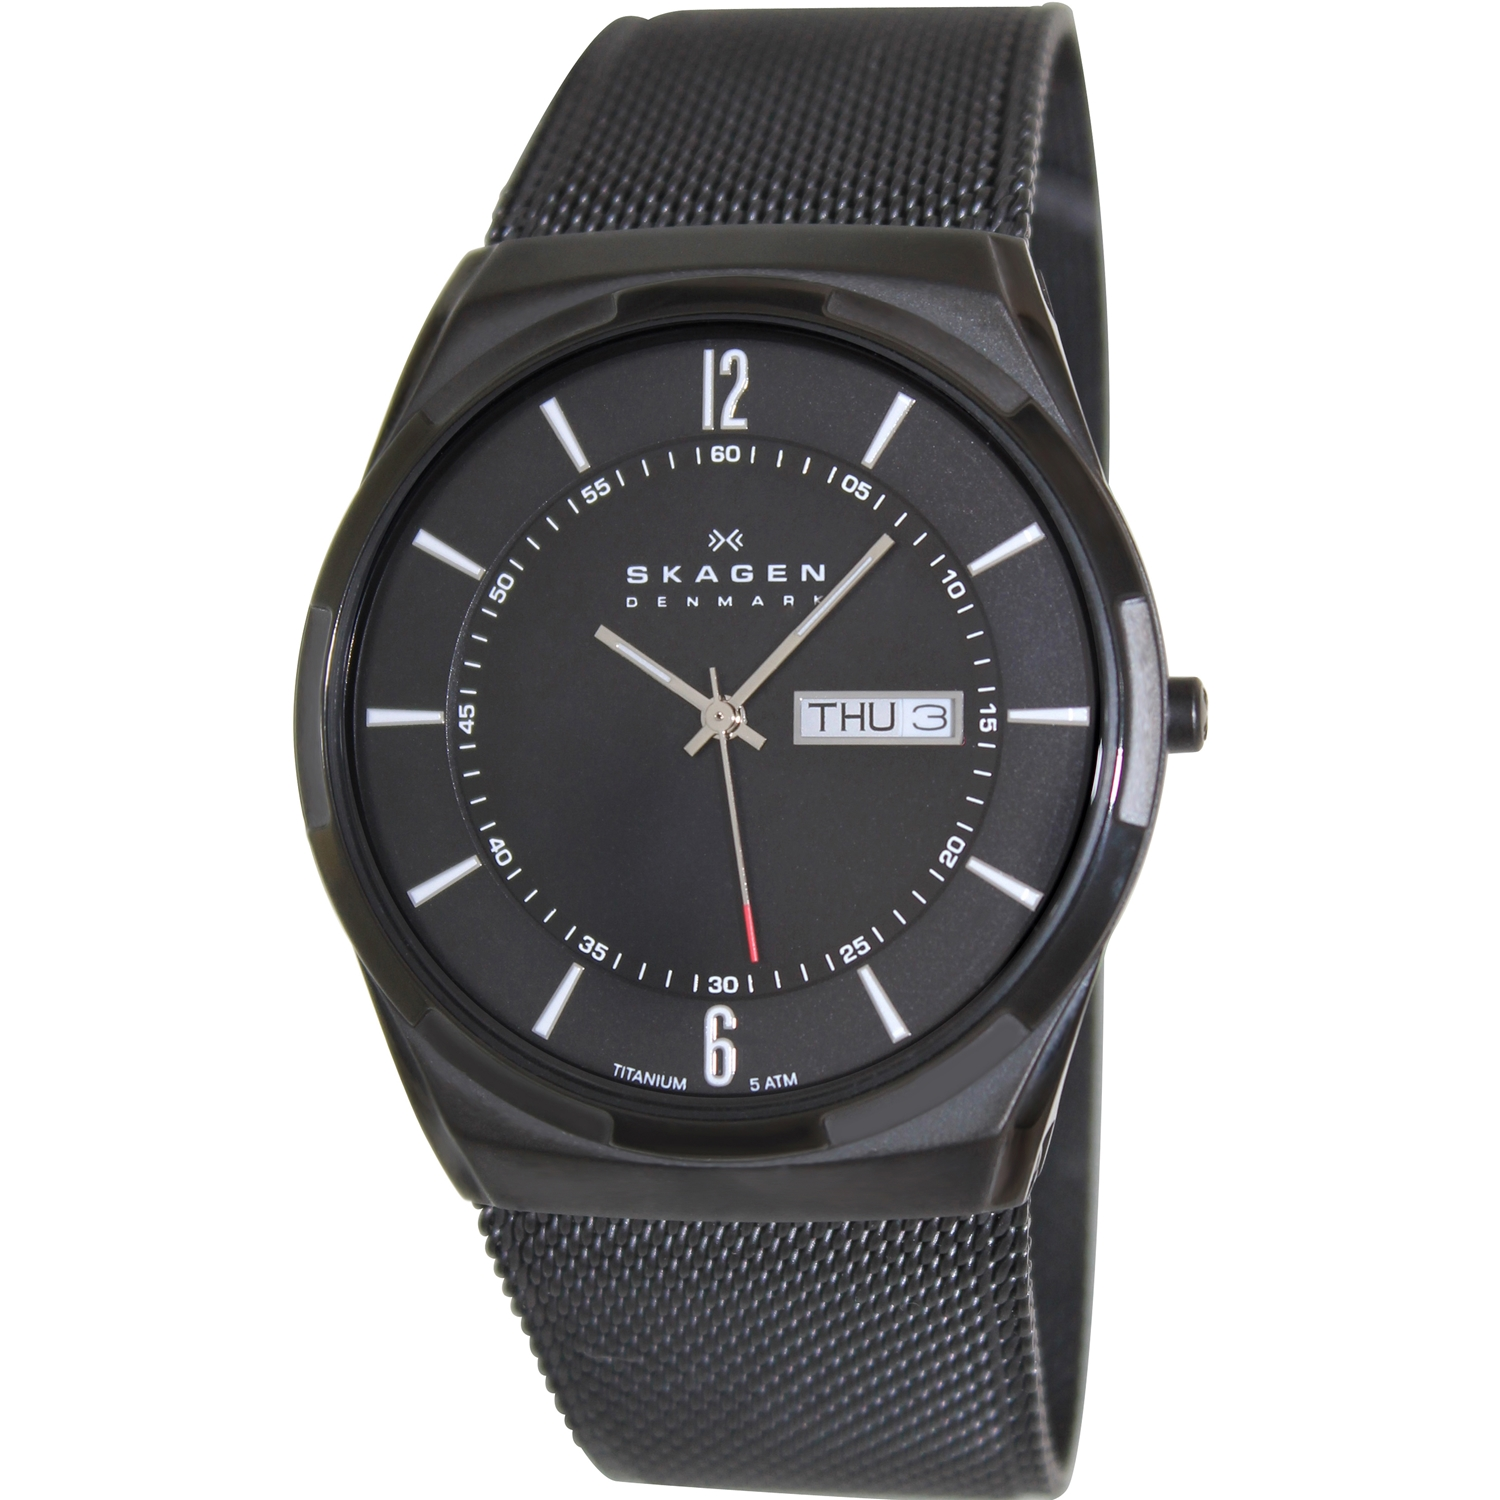 Skagen Men's Aktiv SKW6006 Black Stainless-Steel Quartz Watch